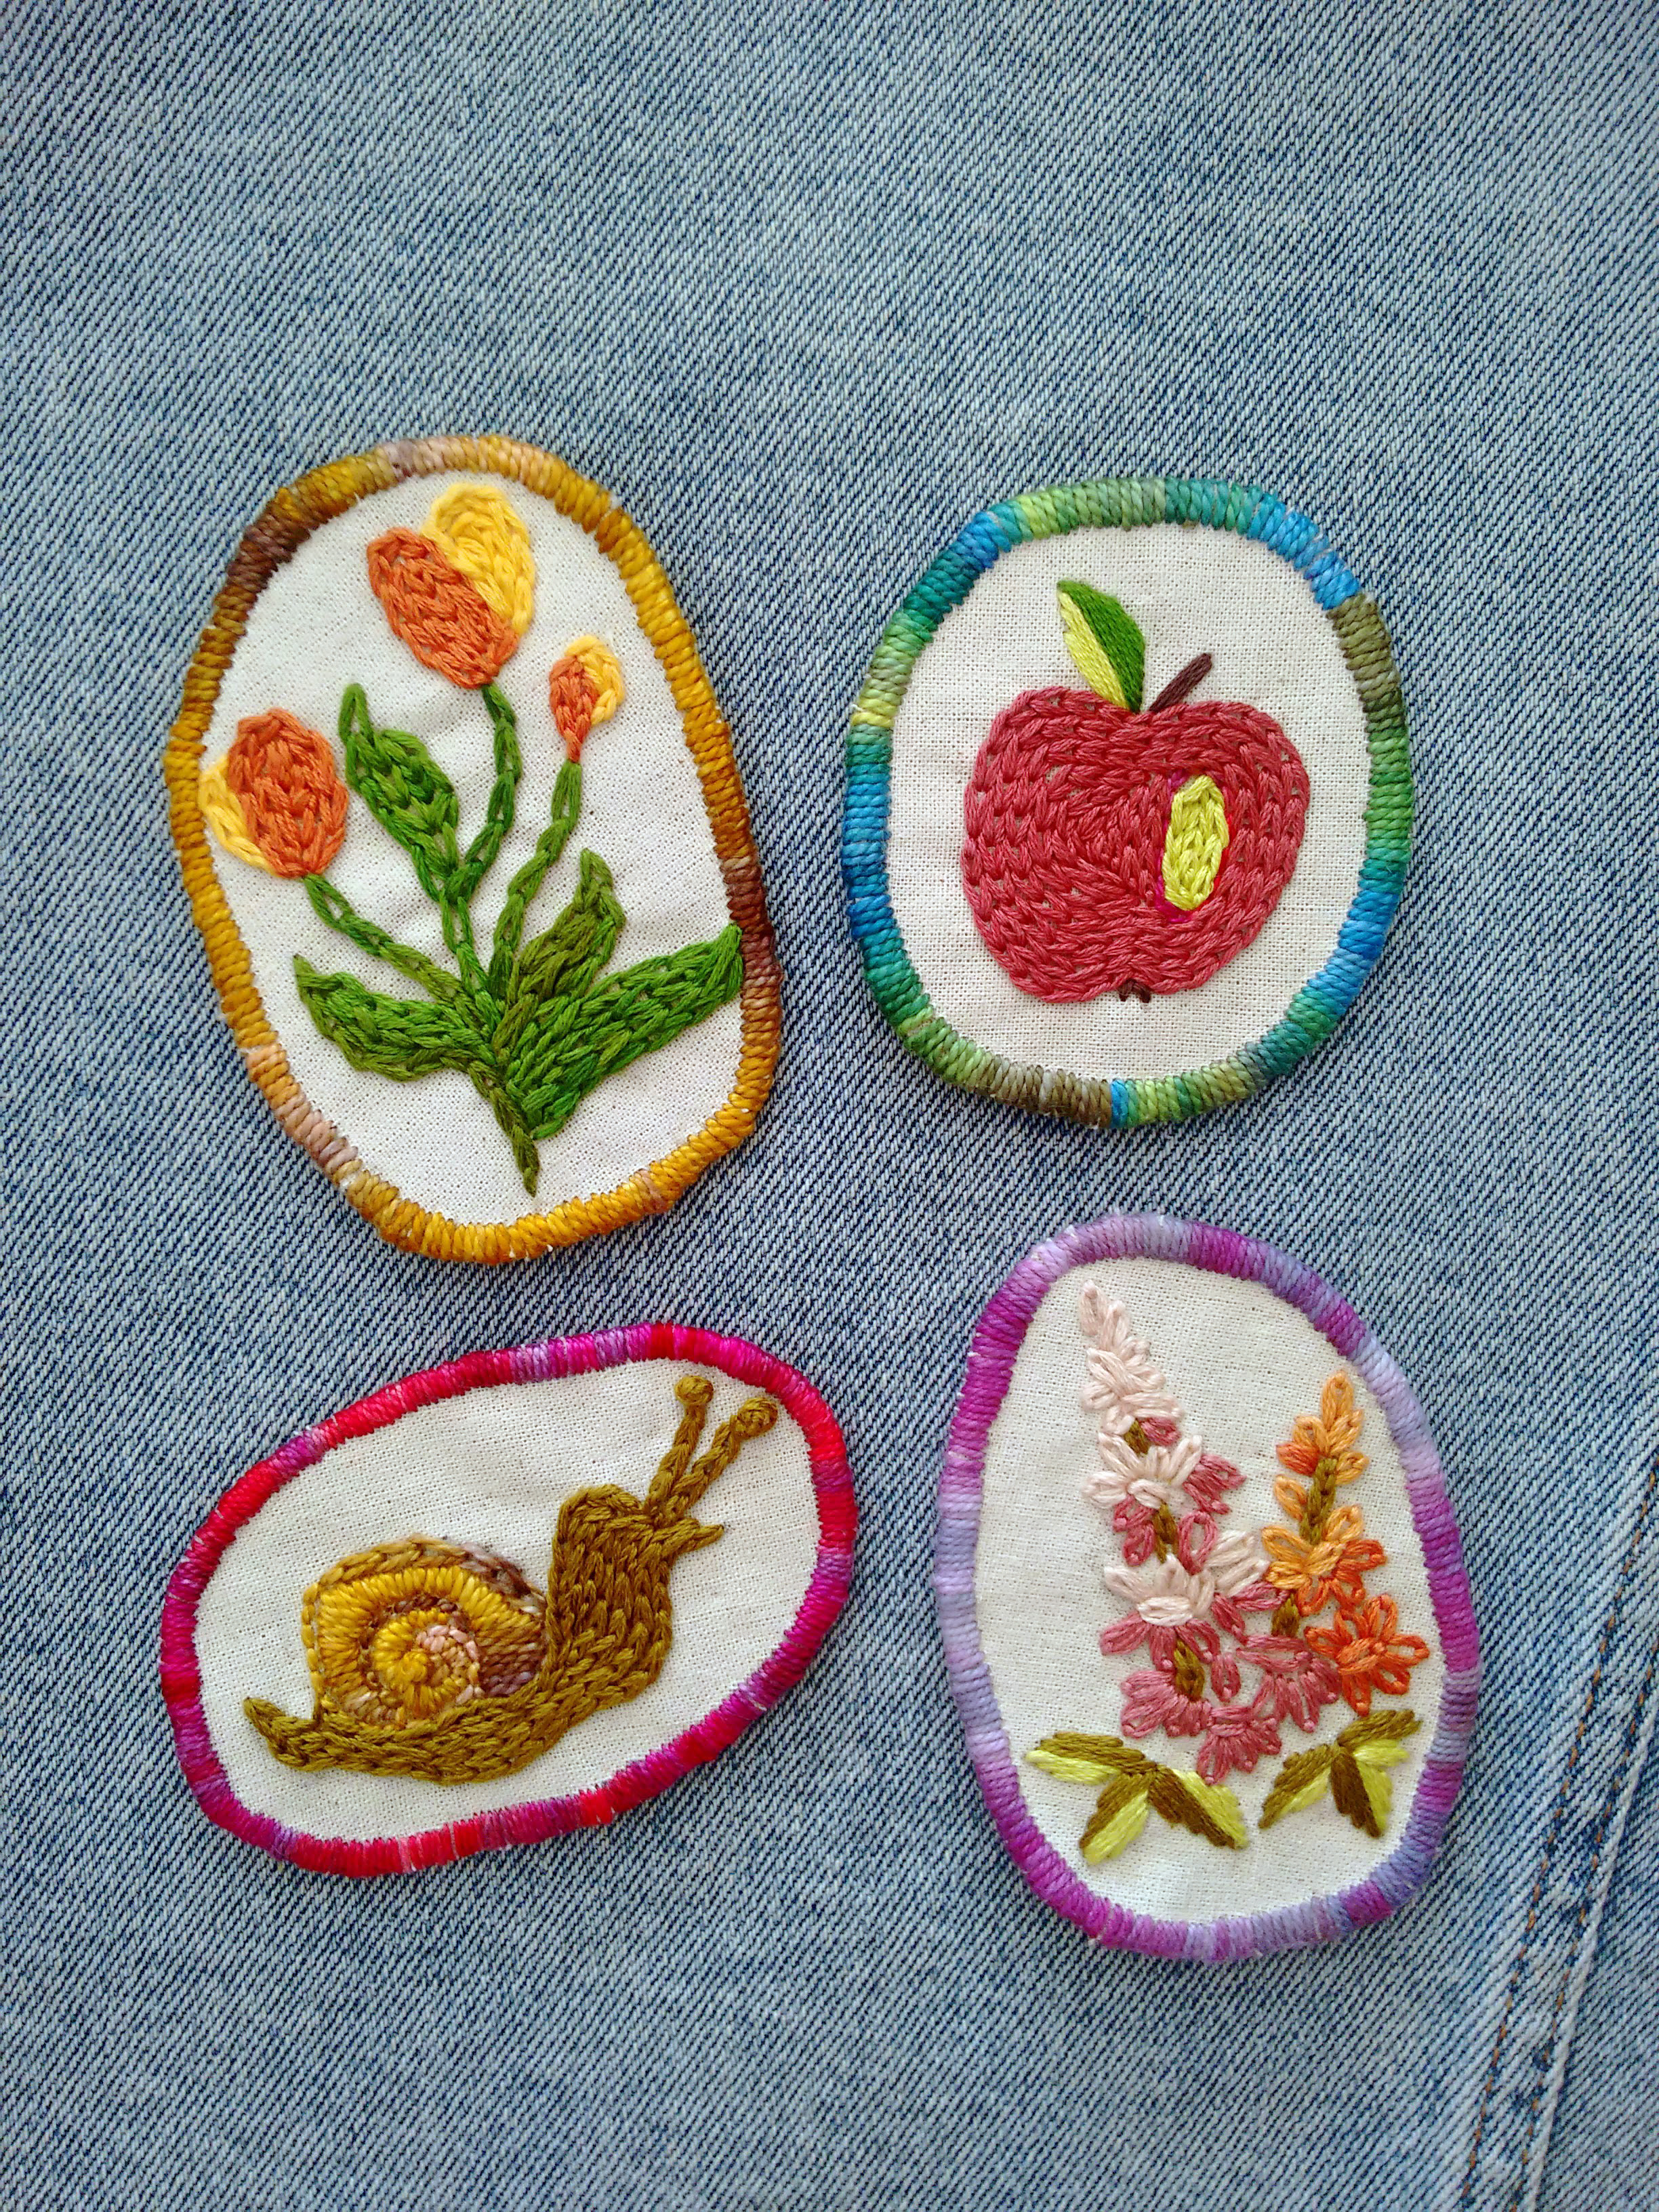 Four colorful patches on a jean background